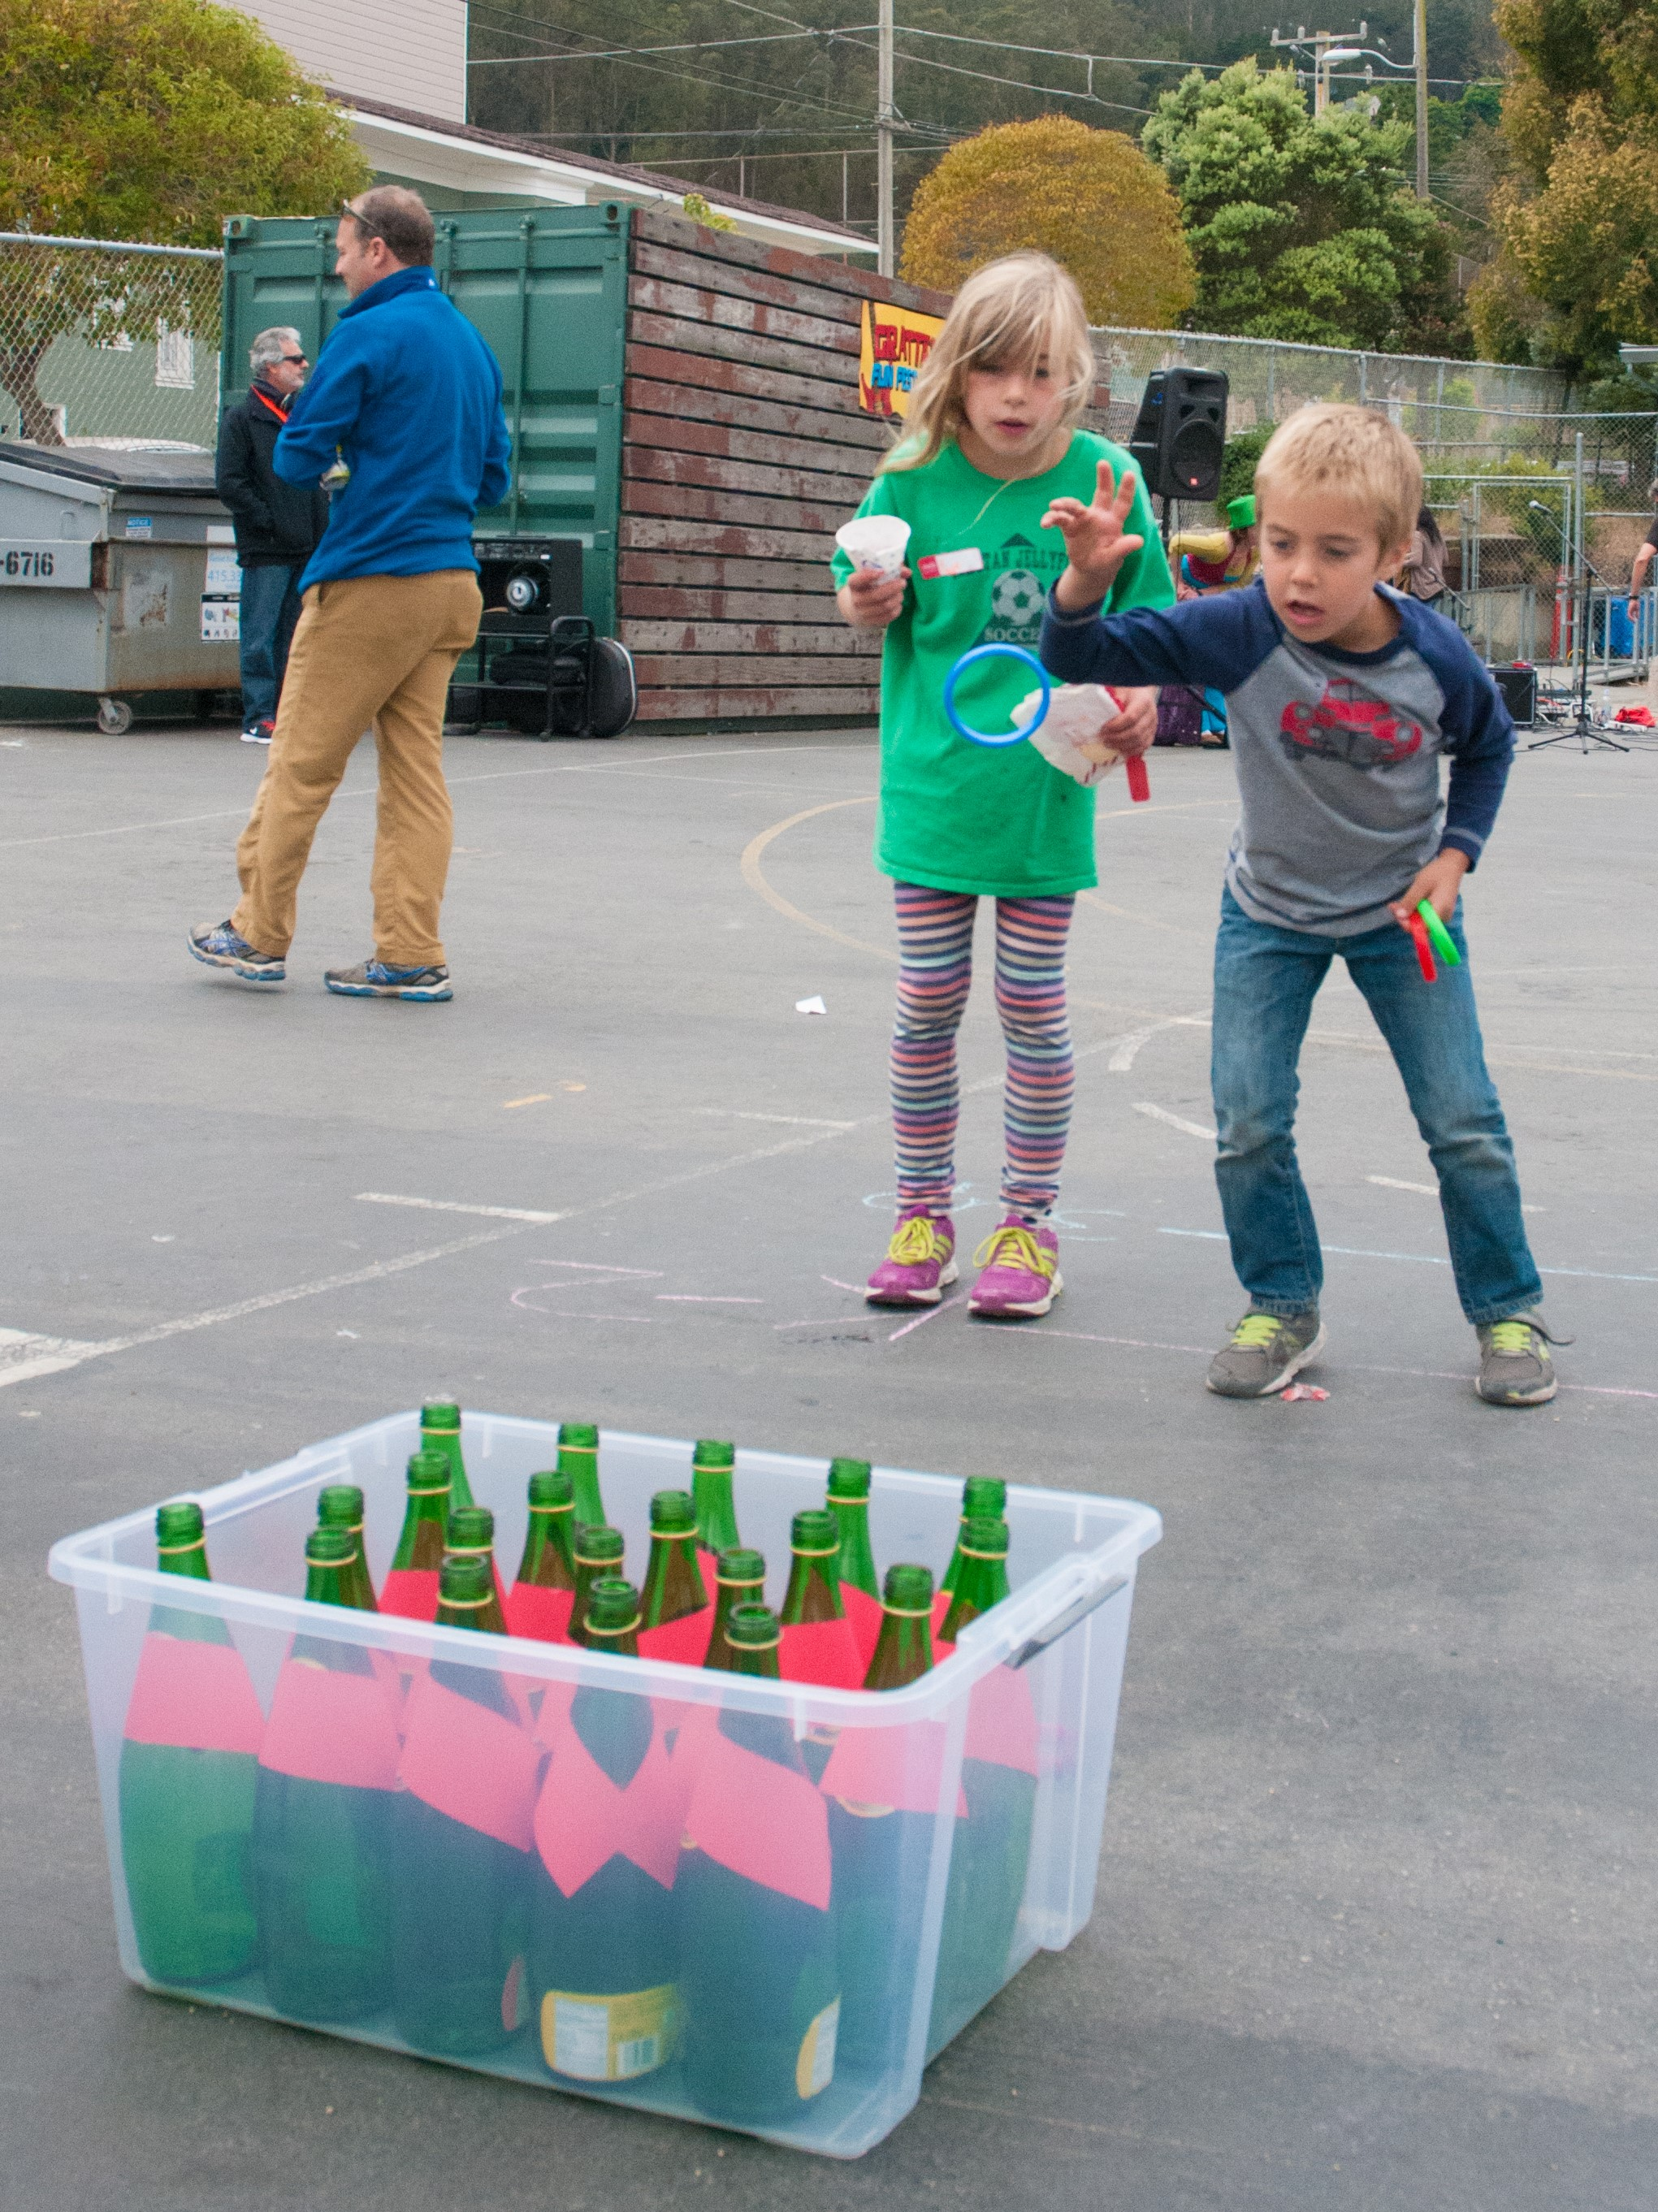 Children playing ring toss at an outdoor school festival